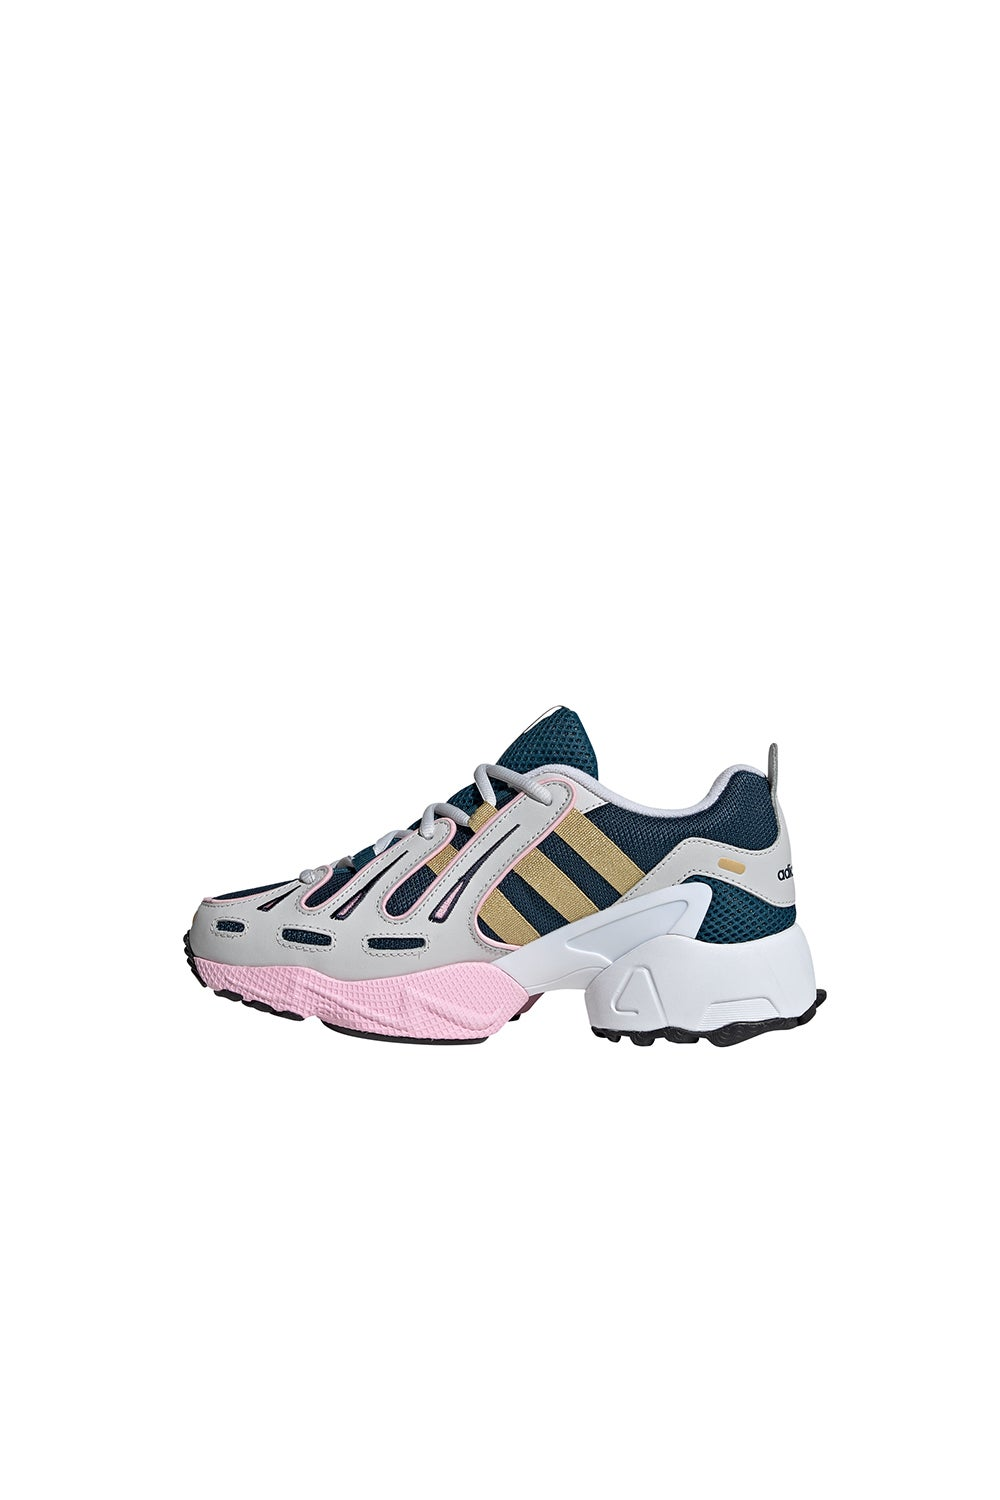 adidas EQT Gazelle Boost Tech Mineral/Gold Met./True Pink